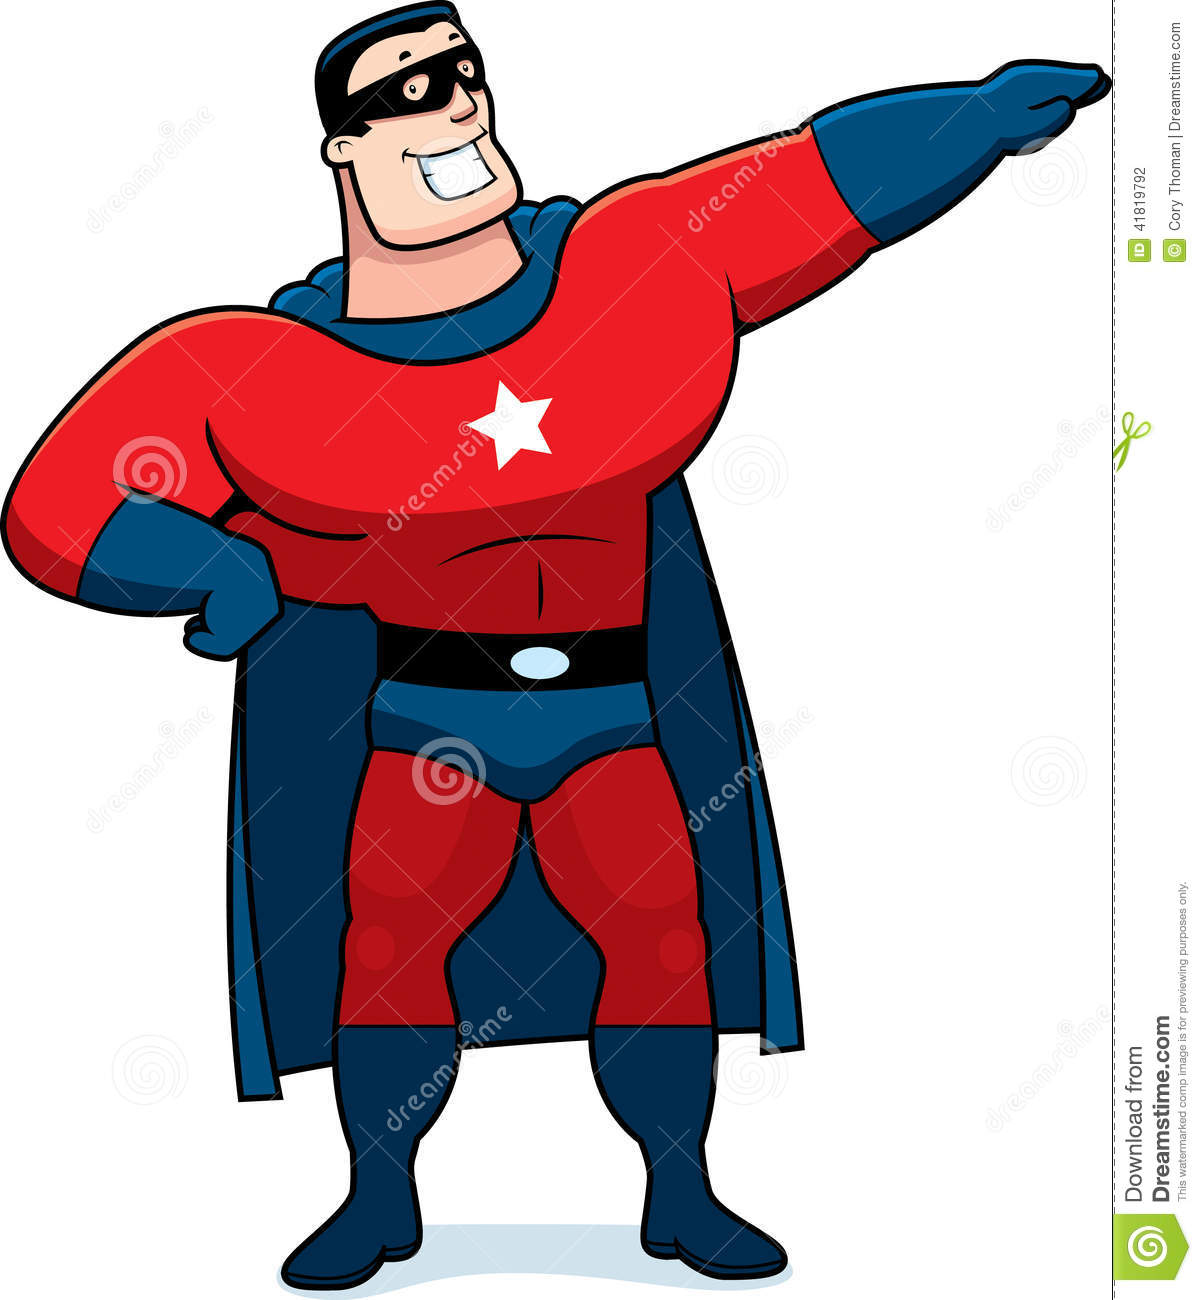 Cartoon superhero man stock vector illustration of - Superhero dessin ...